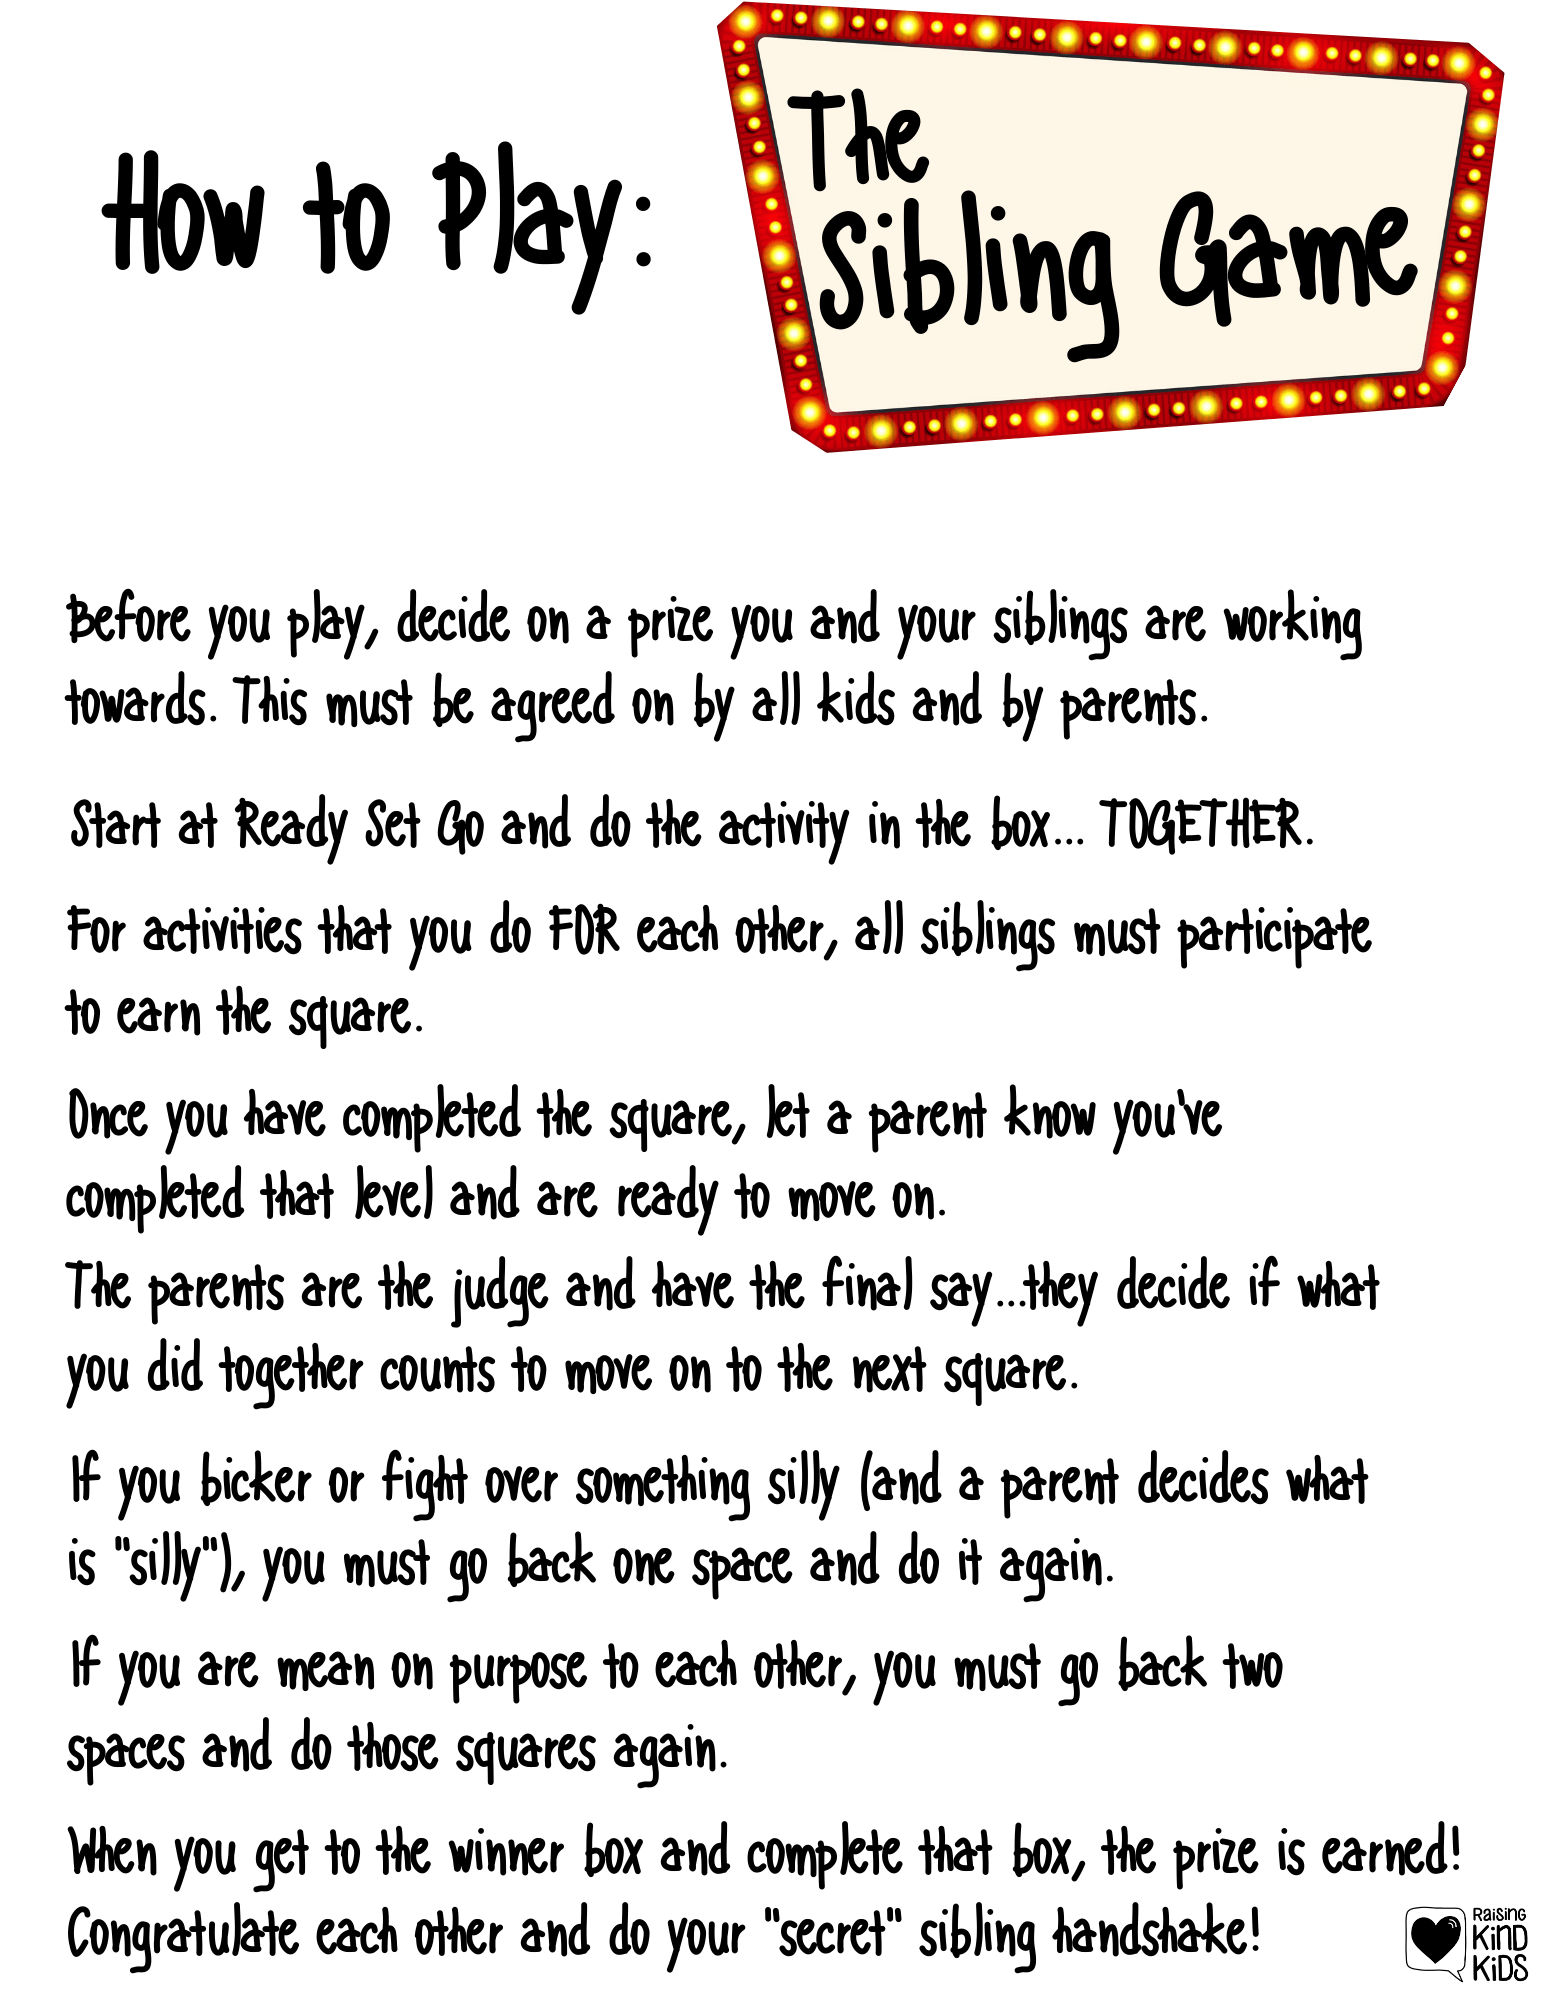 If you're looking for ideas for teaching siblings to be kind to each other this sibling kindness game will help! It sets them up to be on the same team, to work together for a common goal na dhelps them be kind to siblings daily. #siblings #raisingsiblings #siblingkindness #beingkindtosiblings #beakindsibling